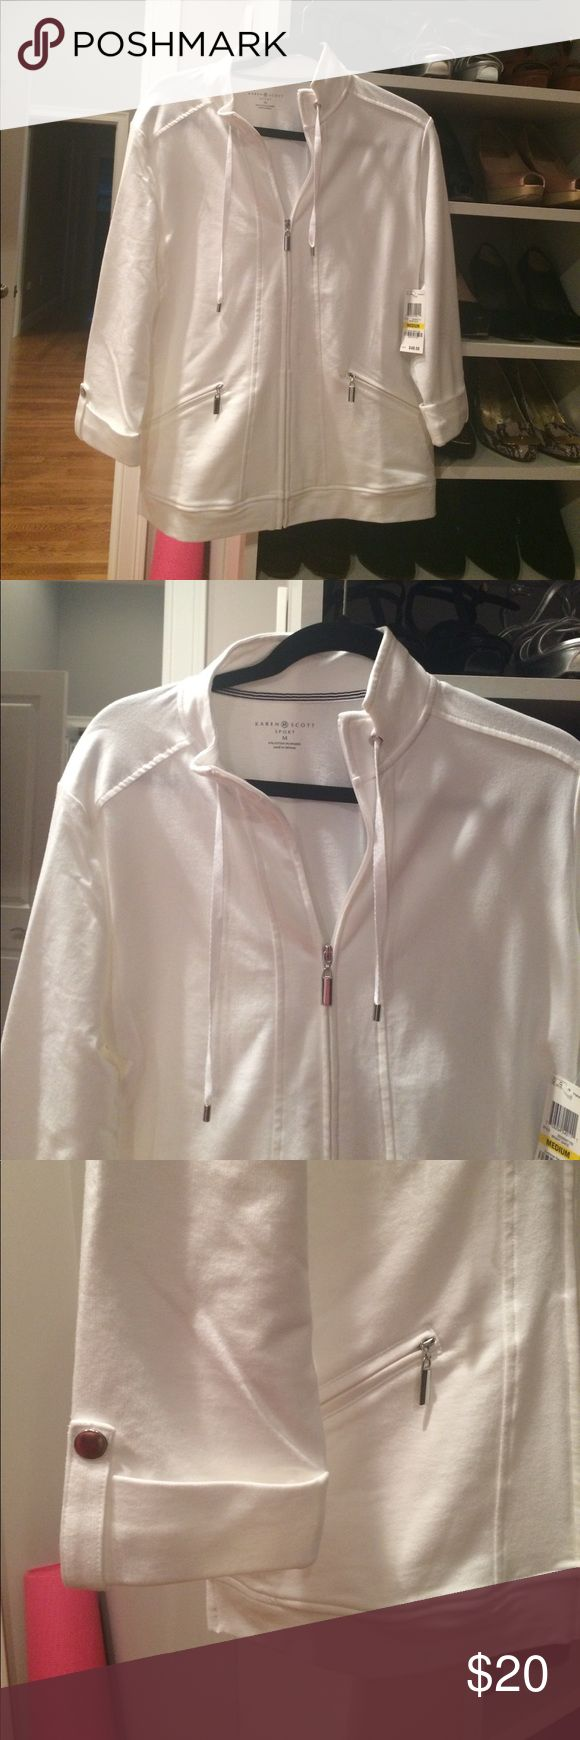 NWT White Karen Scott Sport Jacket. New with tags white Karen Scott Sport Jacket. Purchased at Macy's . Never been worn. Tags still attached! Karen Scott Jackets & Coats